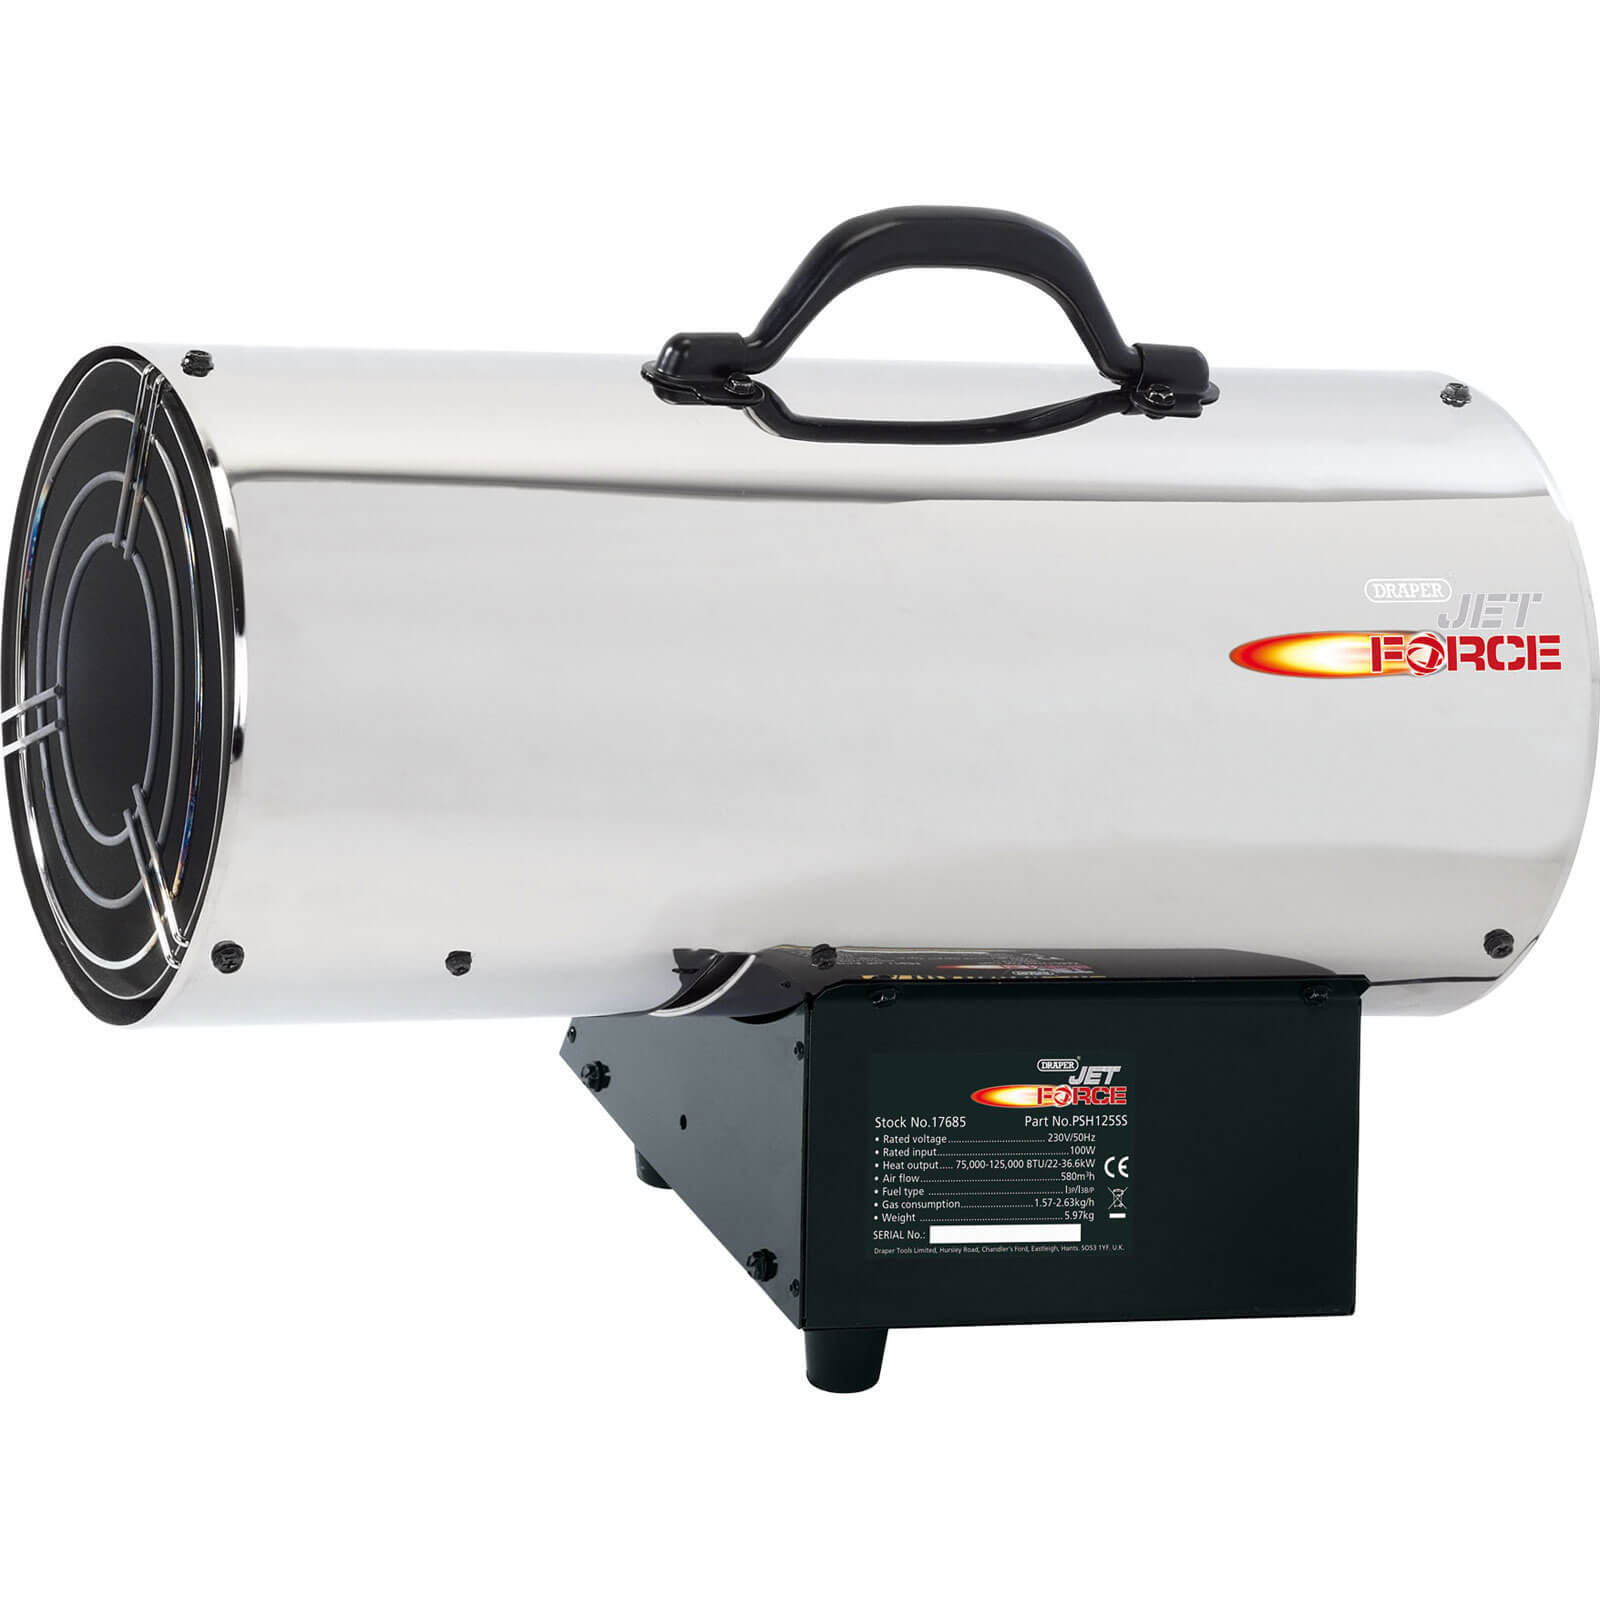 draper jet force psh125ss stainless steel propane space heater - Propane Space Heater